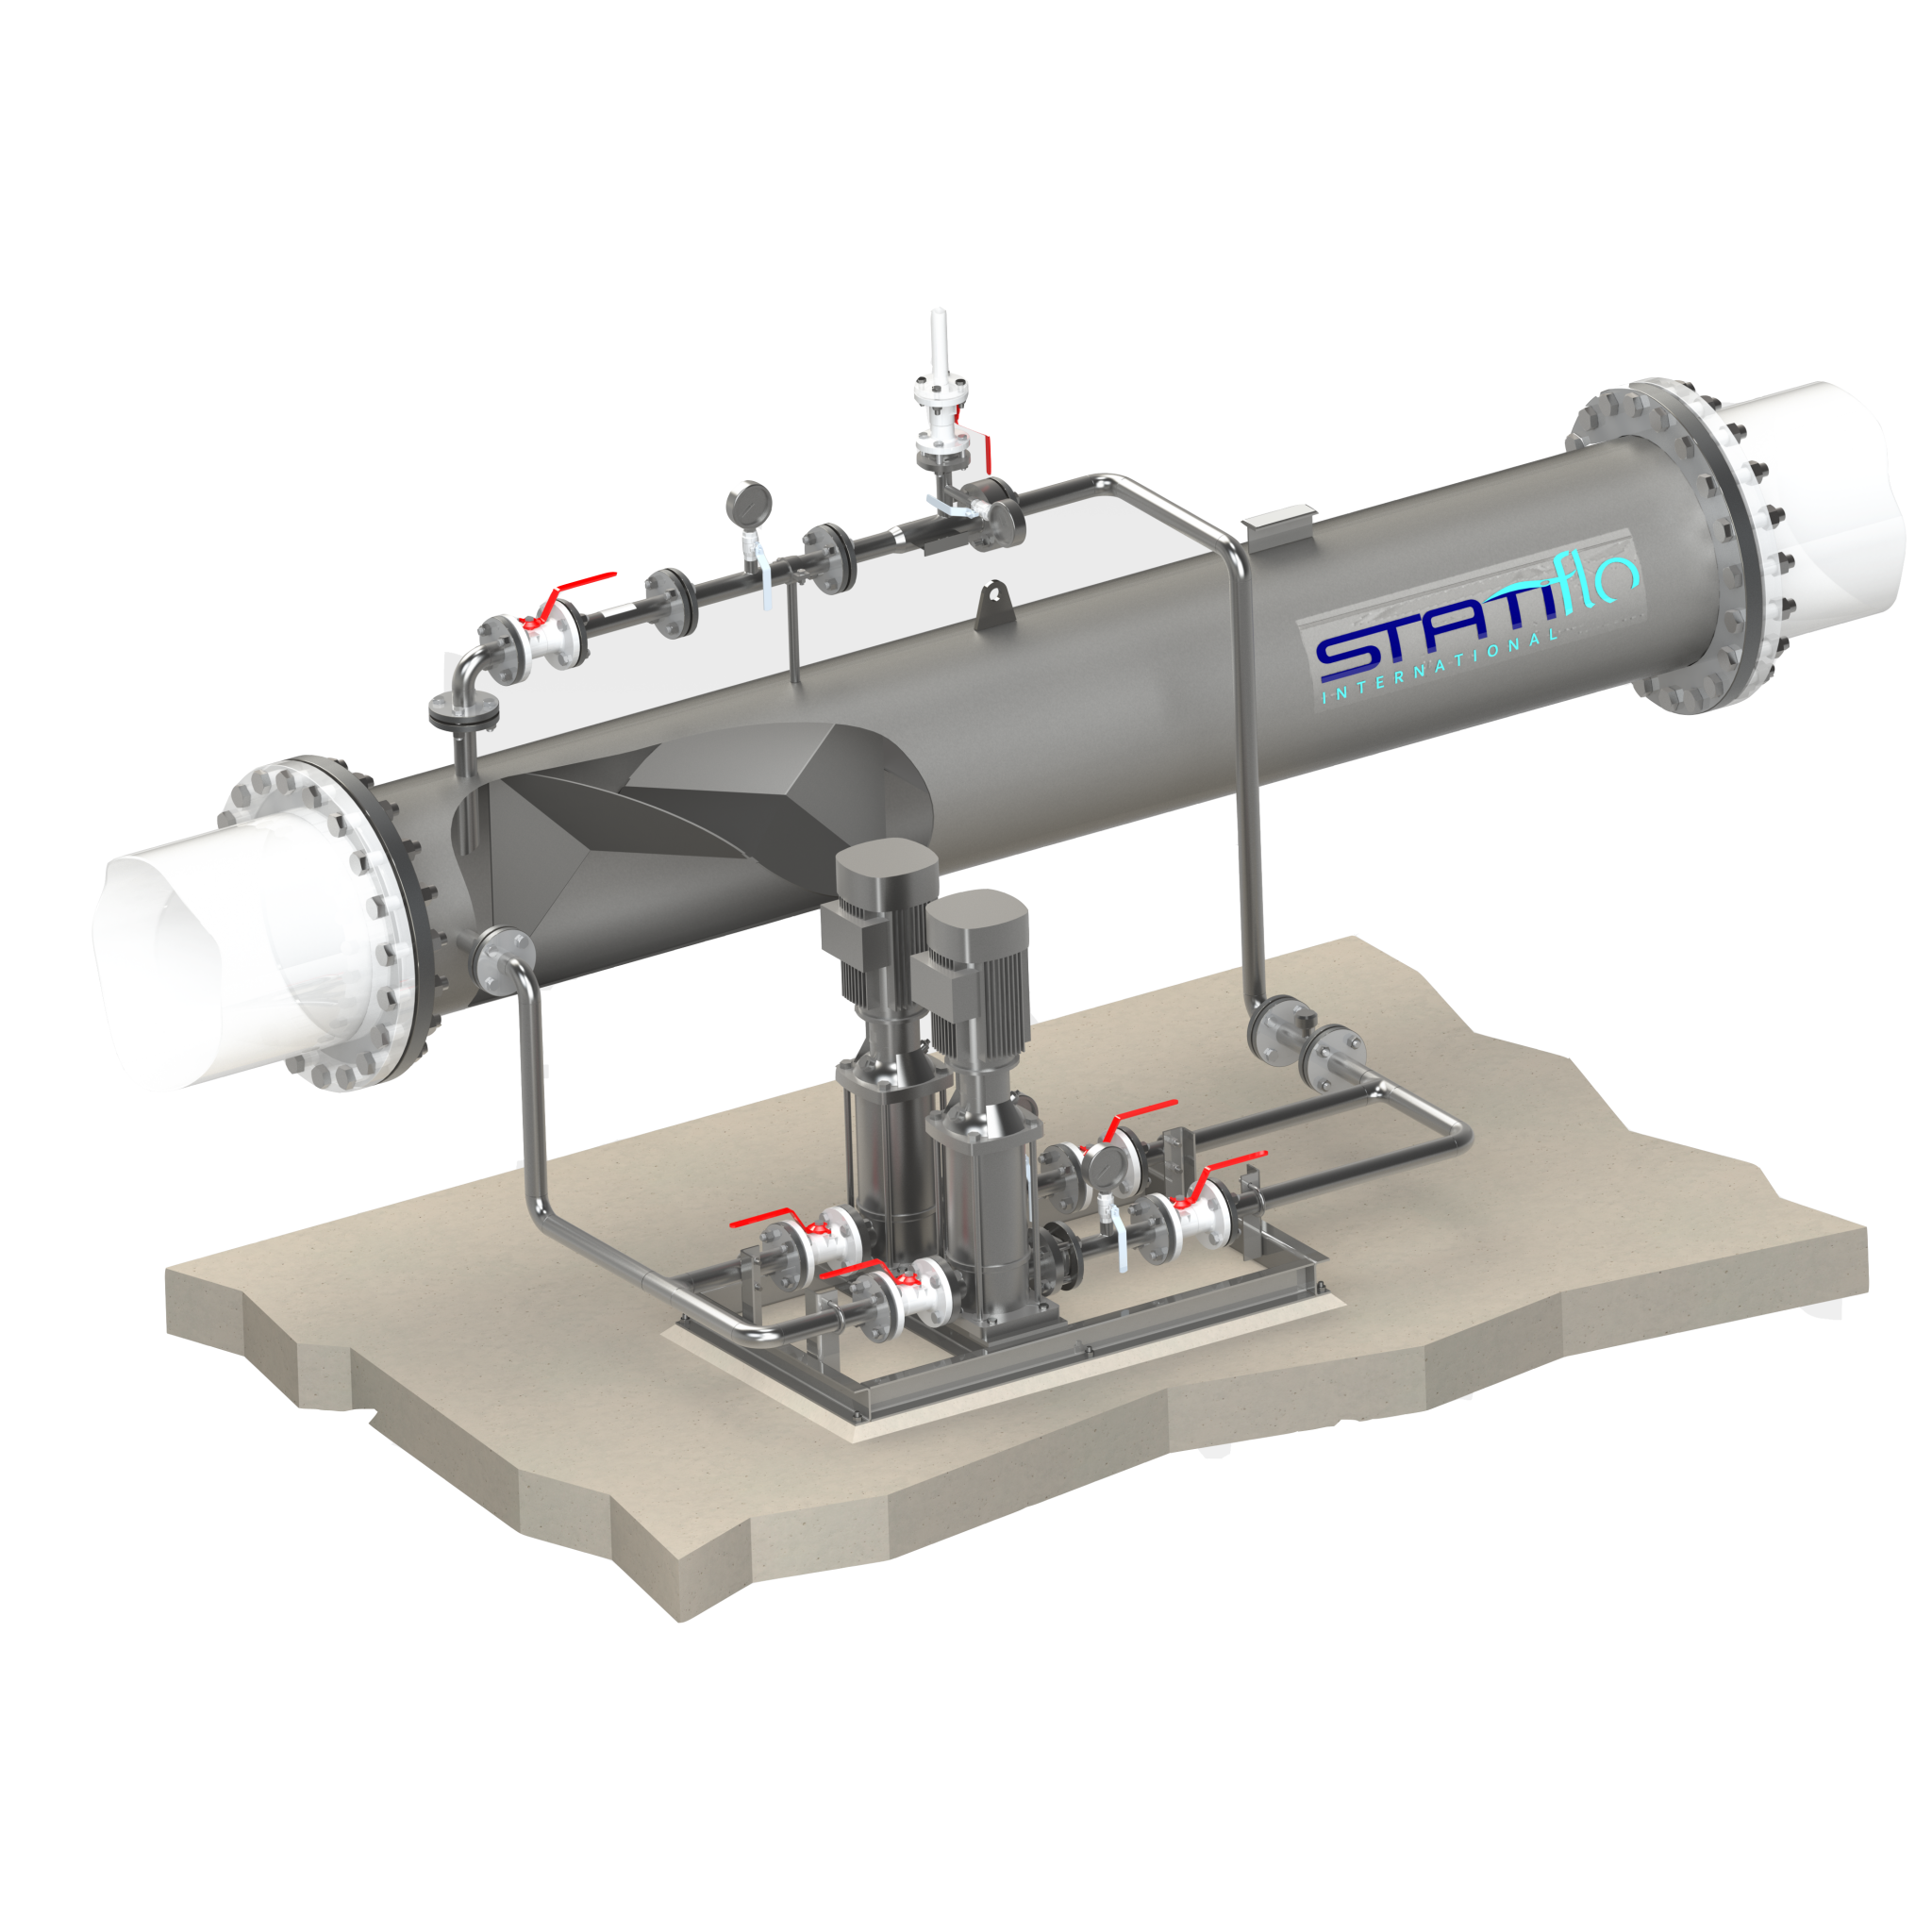 Statiflo GDS is the Equipment of Choice for Ozone Generator